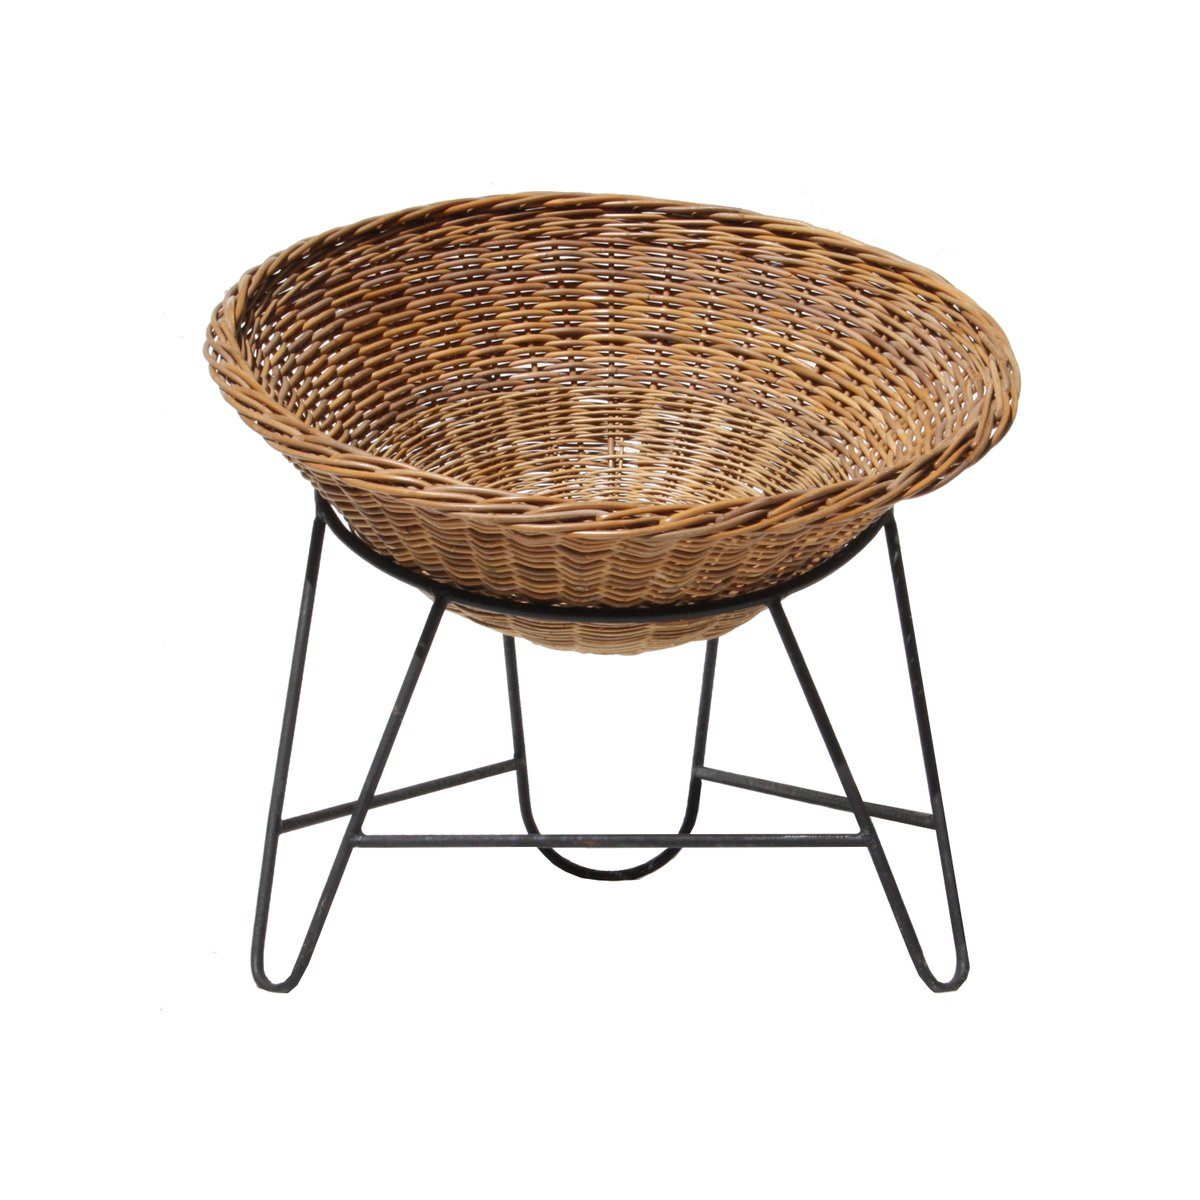 century mid at pamono rattan for basket french sale chair